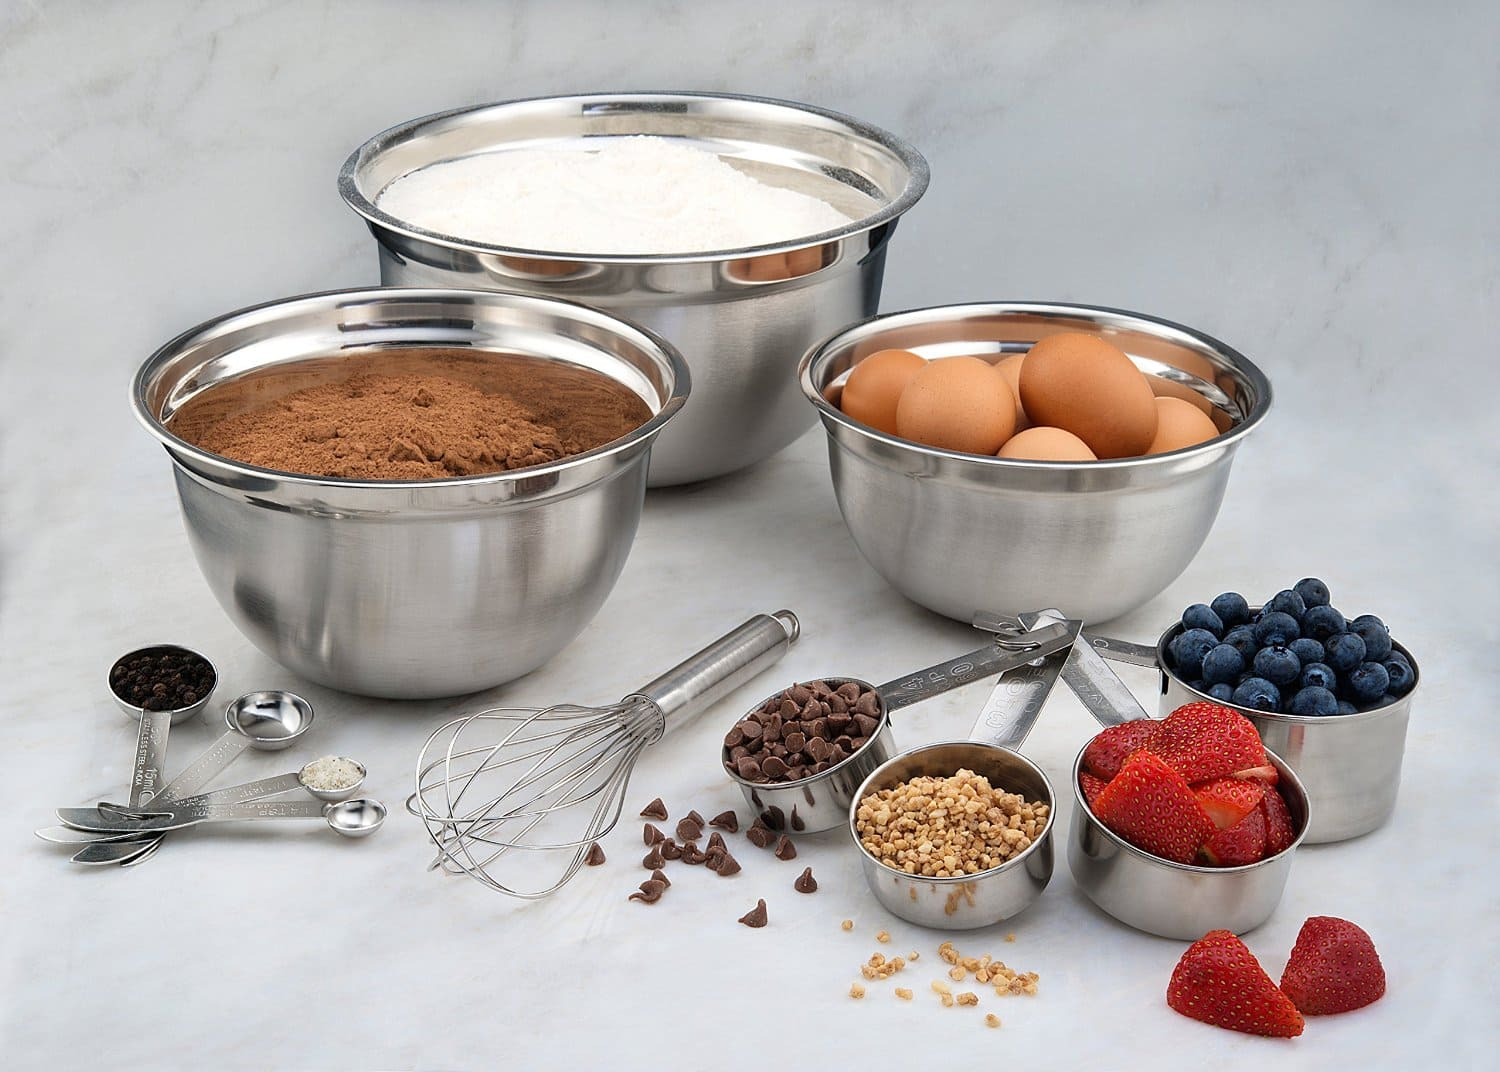 12-Piece Estilo Stainless Steel Set: Mixing Bowls, Measuring Cups, Measuring Spoons, Barrel Whisk all for $11.63 at Amazon